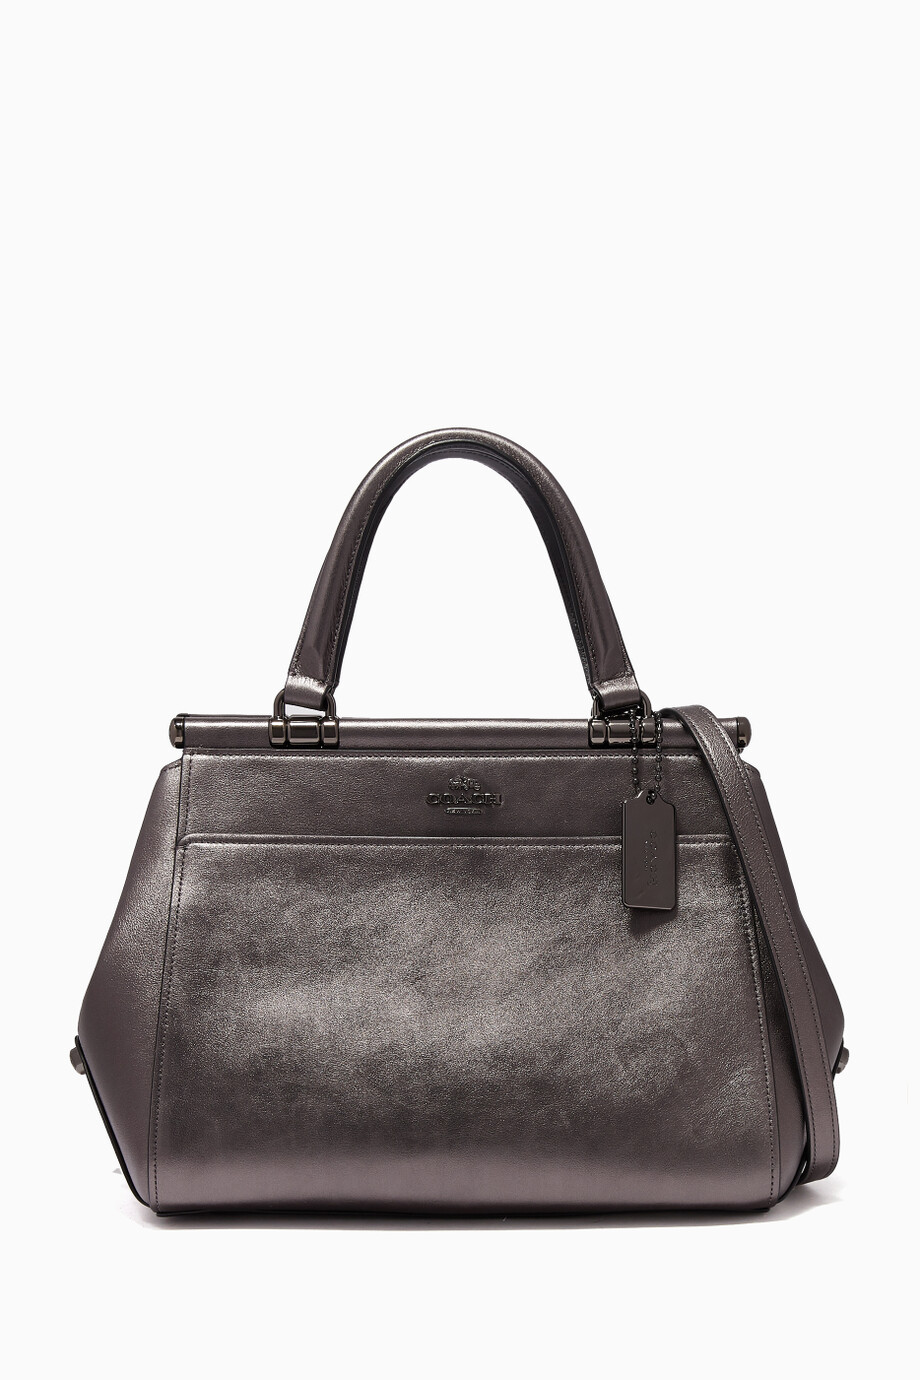 58db8e77542c12 Shop Coach Grey Metallic-Graphite Leather Grace Tote Bag for Women ...